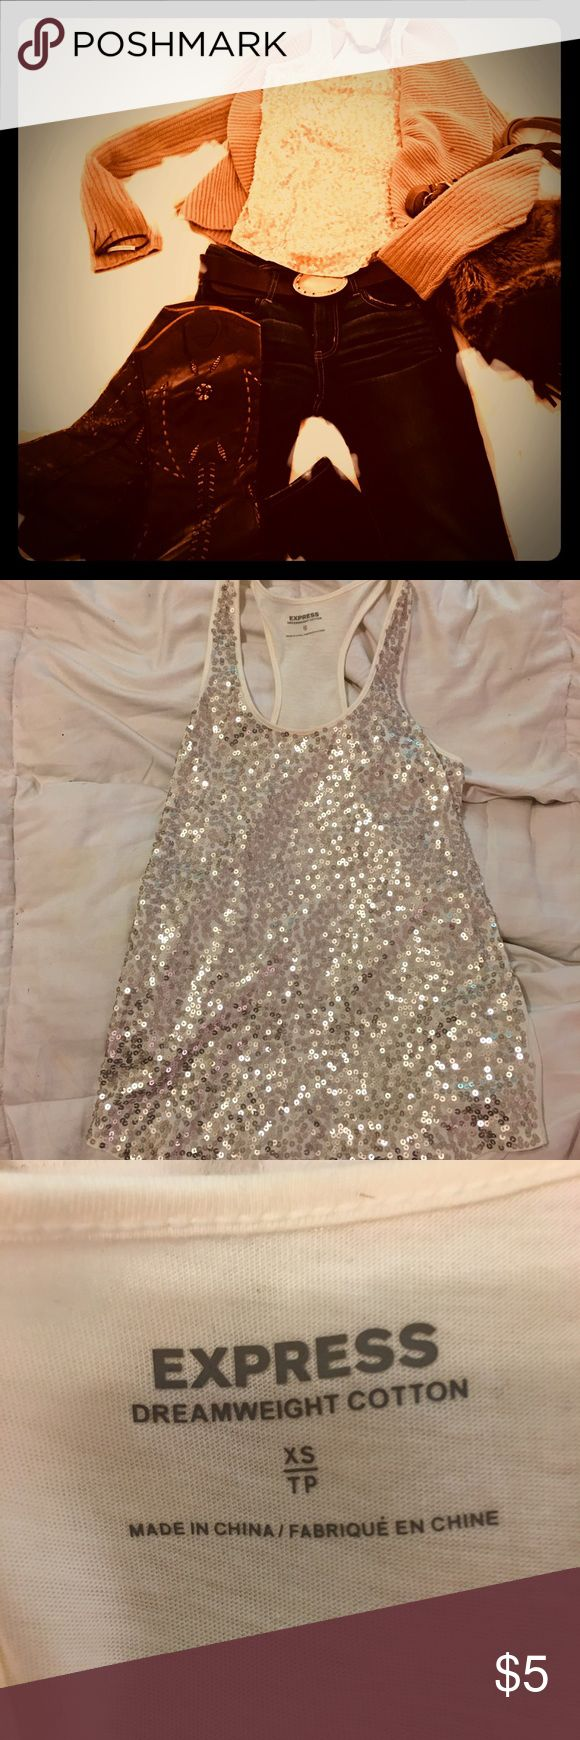 Express Gold Sequin tank top Cotton off white Gold sequin tank top Express Tops Tank Tops